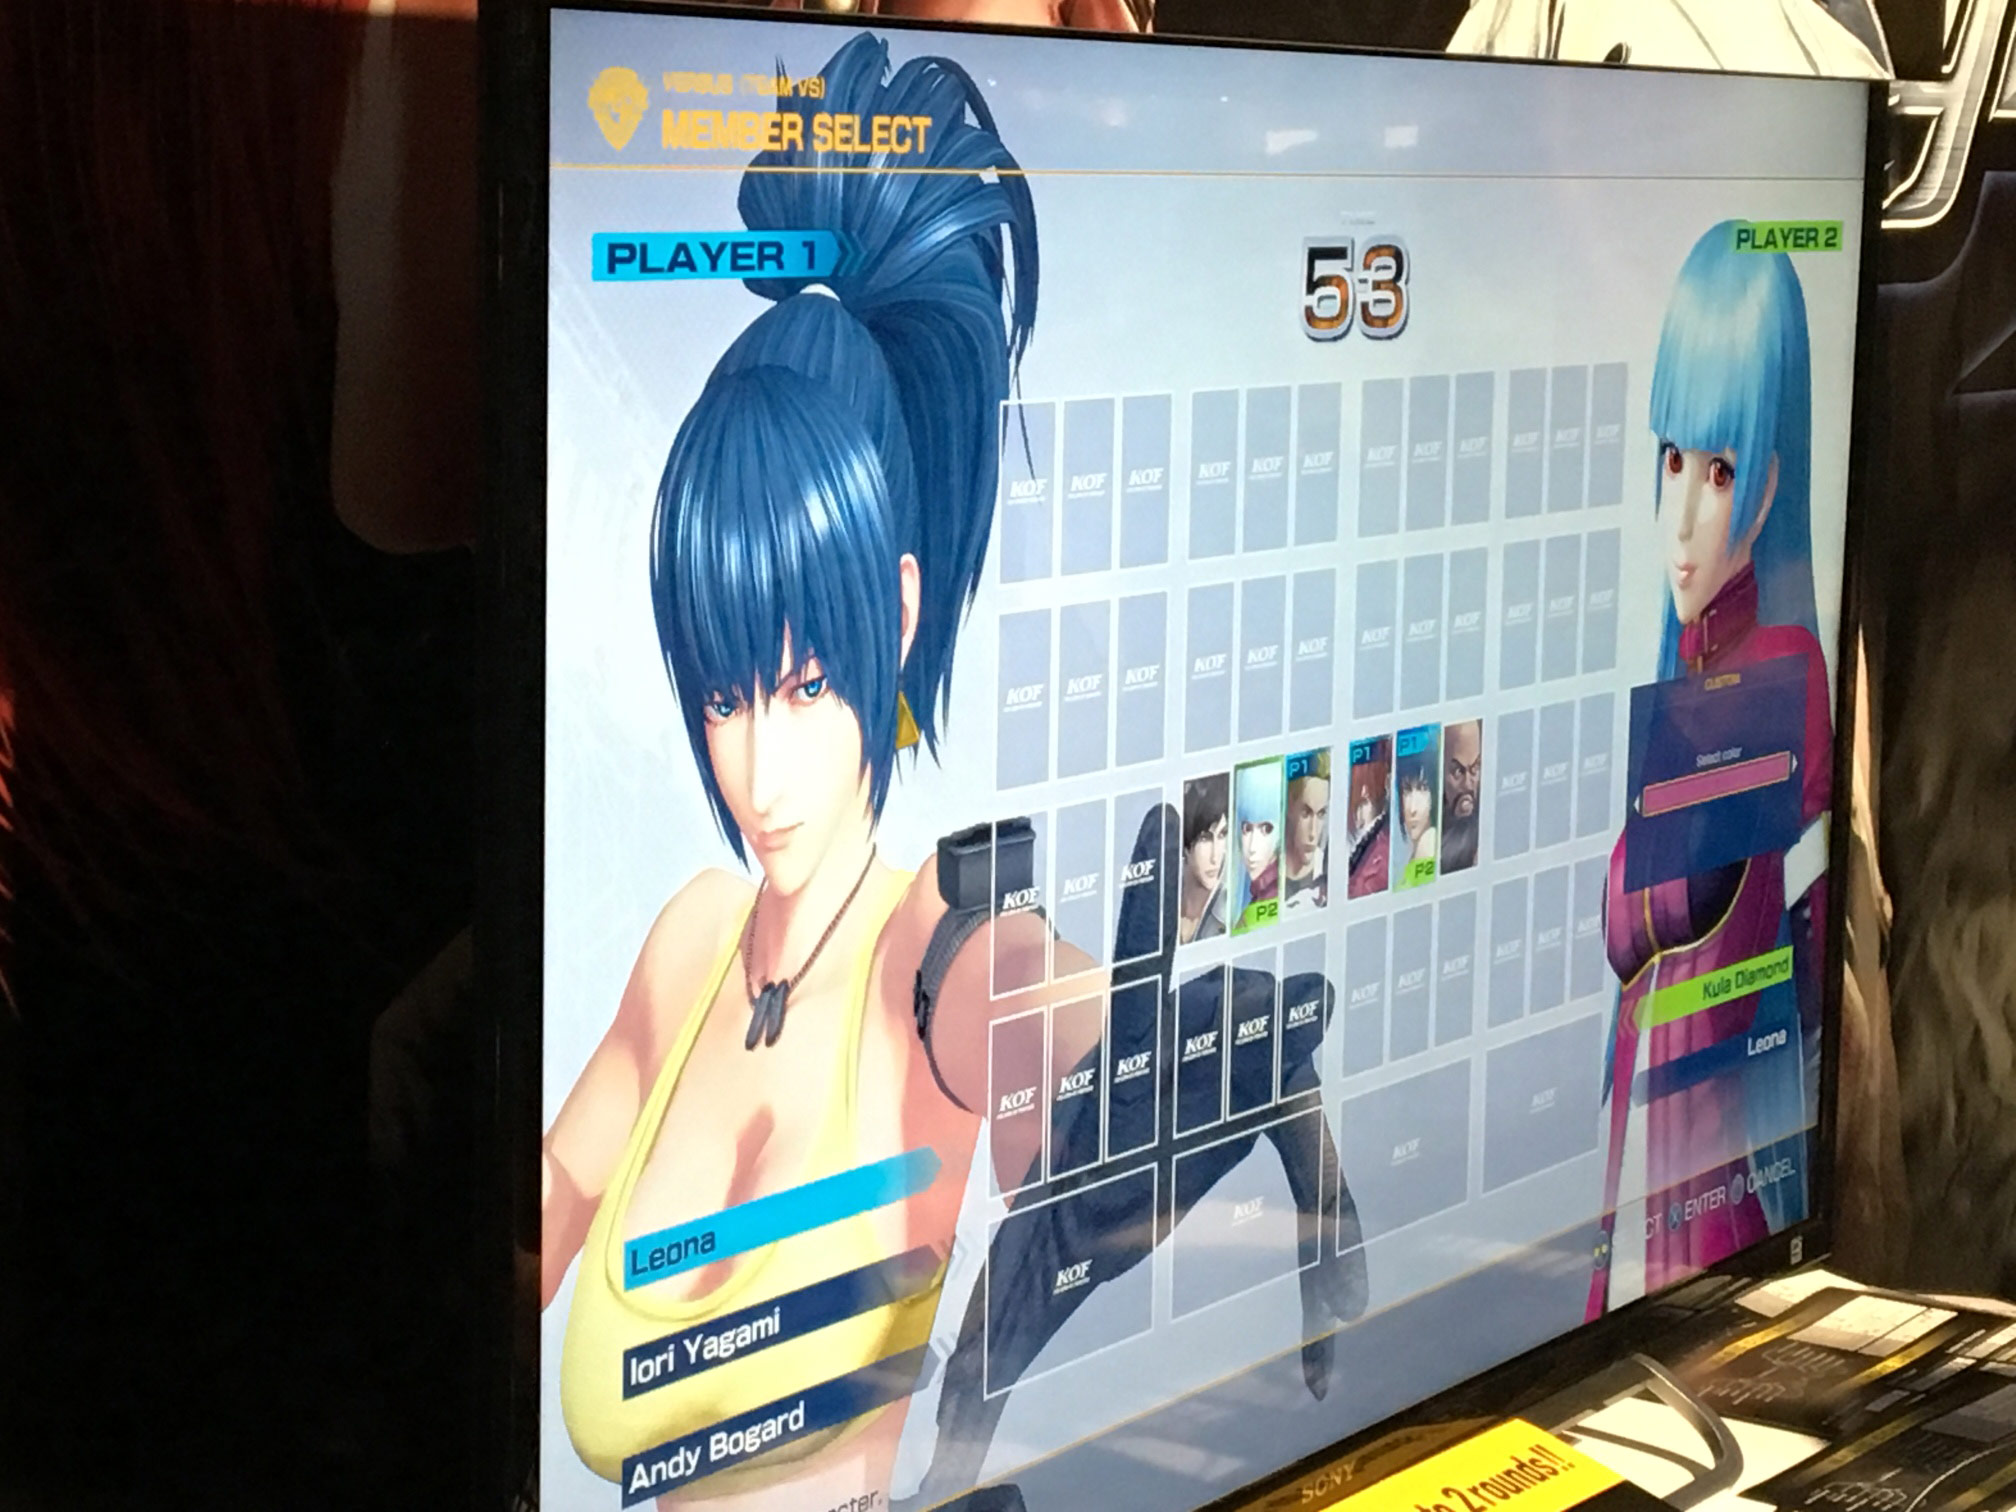 King of Fighters 14 character select, other menus 4 out of 7 image gallery